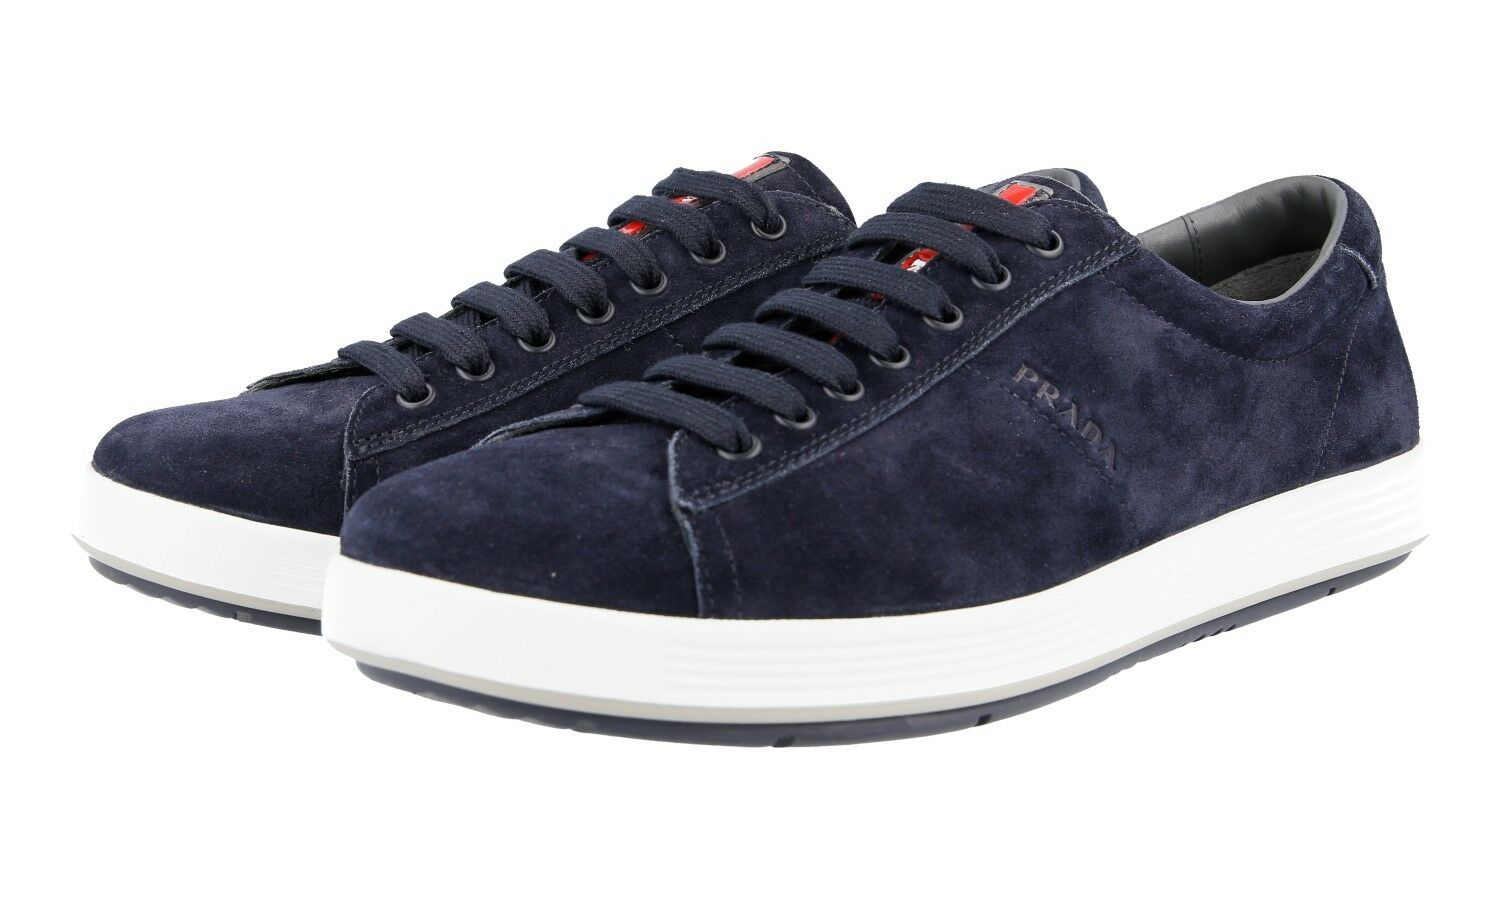 AUTH LUXURY PRADA SNEAKERS SHOES 4E2860 blueE SUEDE NEW 9 43 43,5